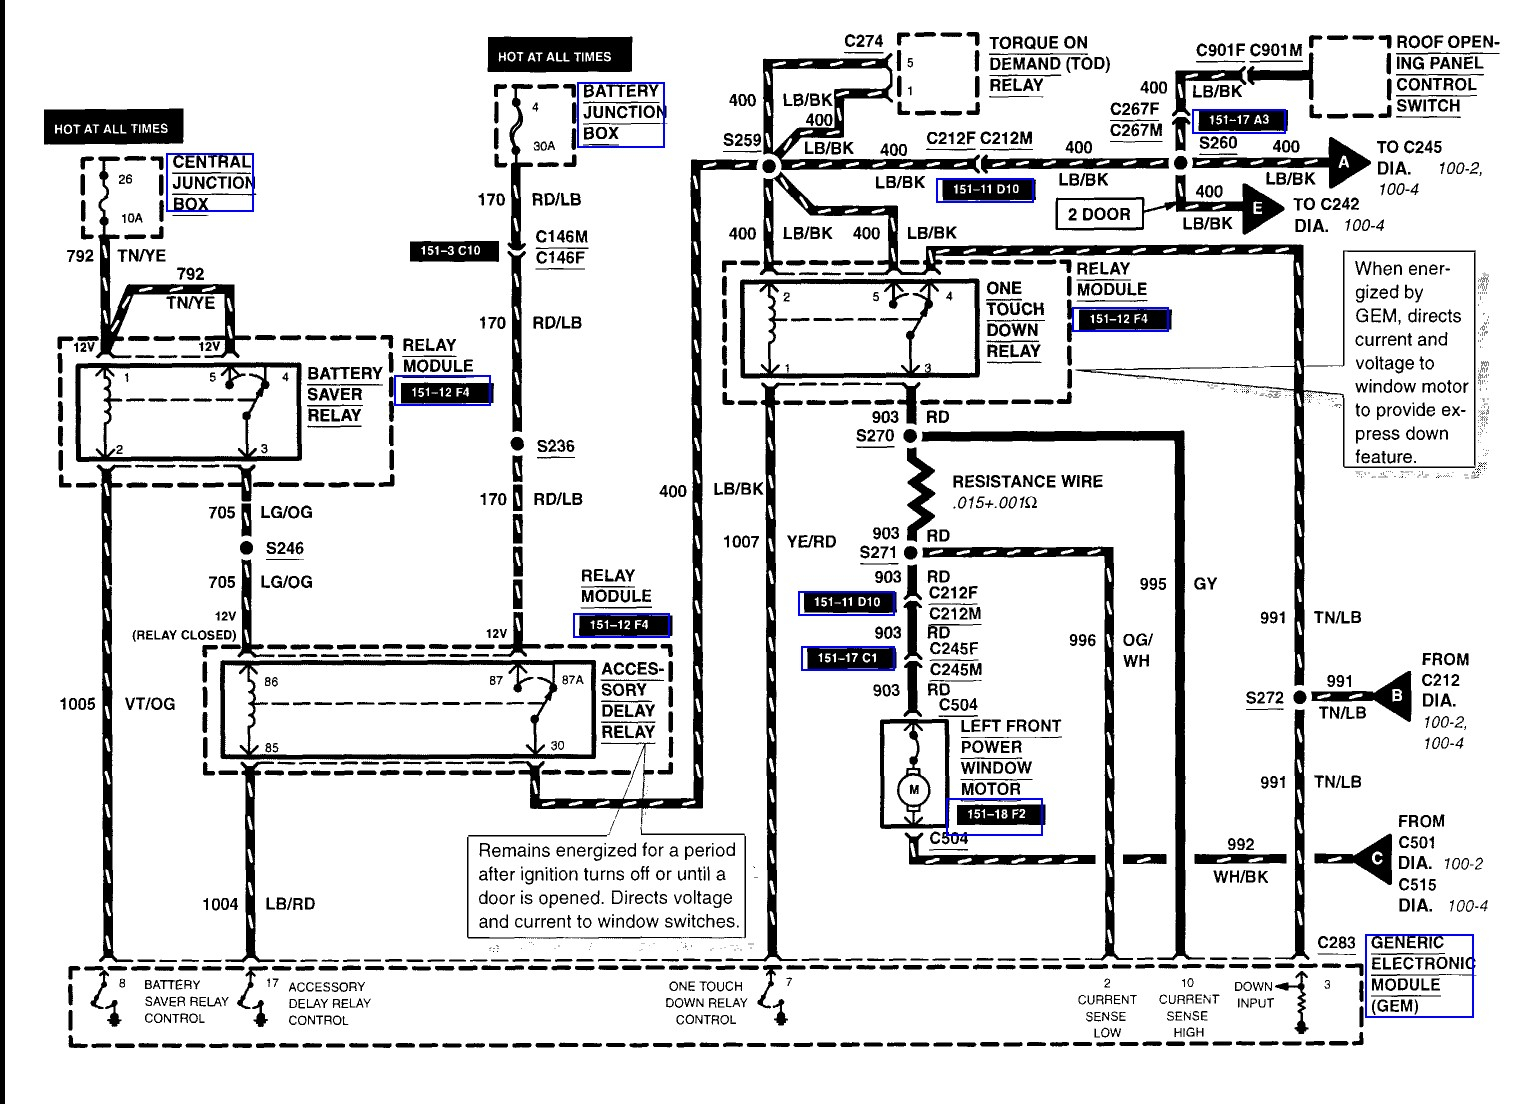 hight resolution of 2002 f250 wiring diagram wiring schematics diagram rh enr green com 2003 f350 fuse panel diagram